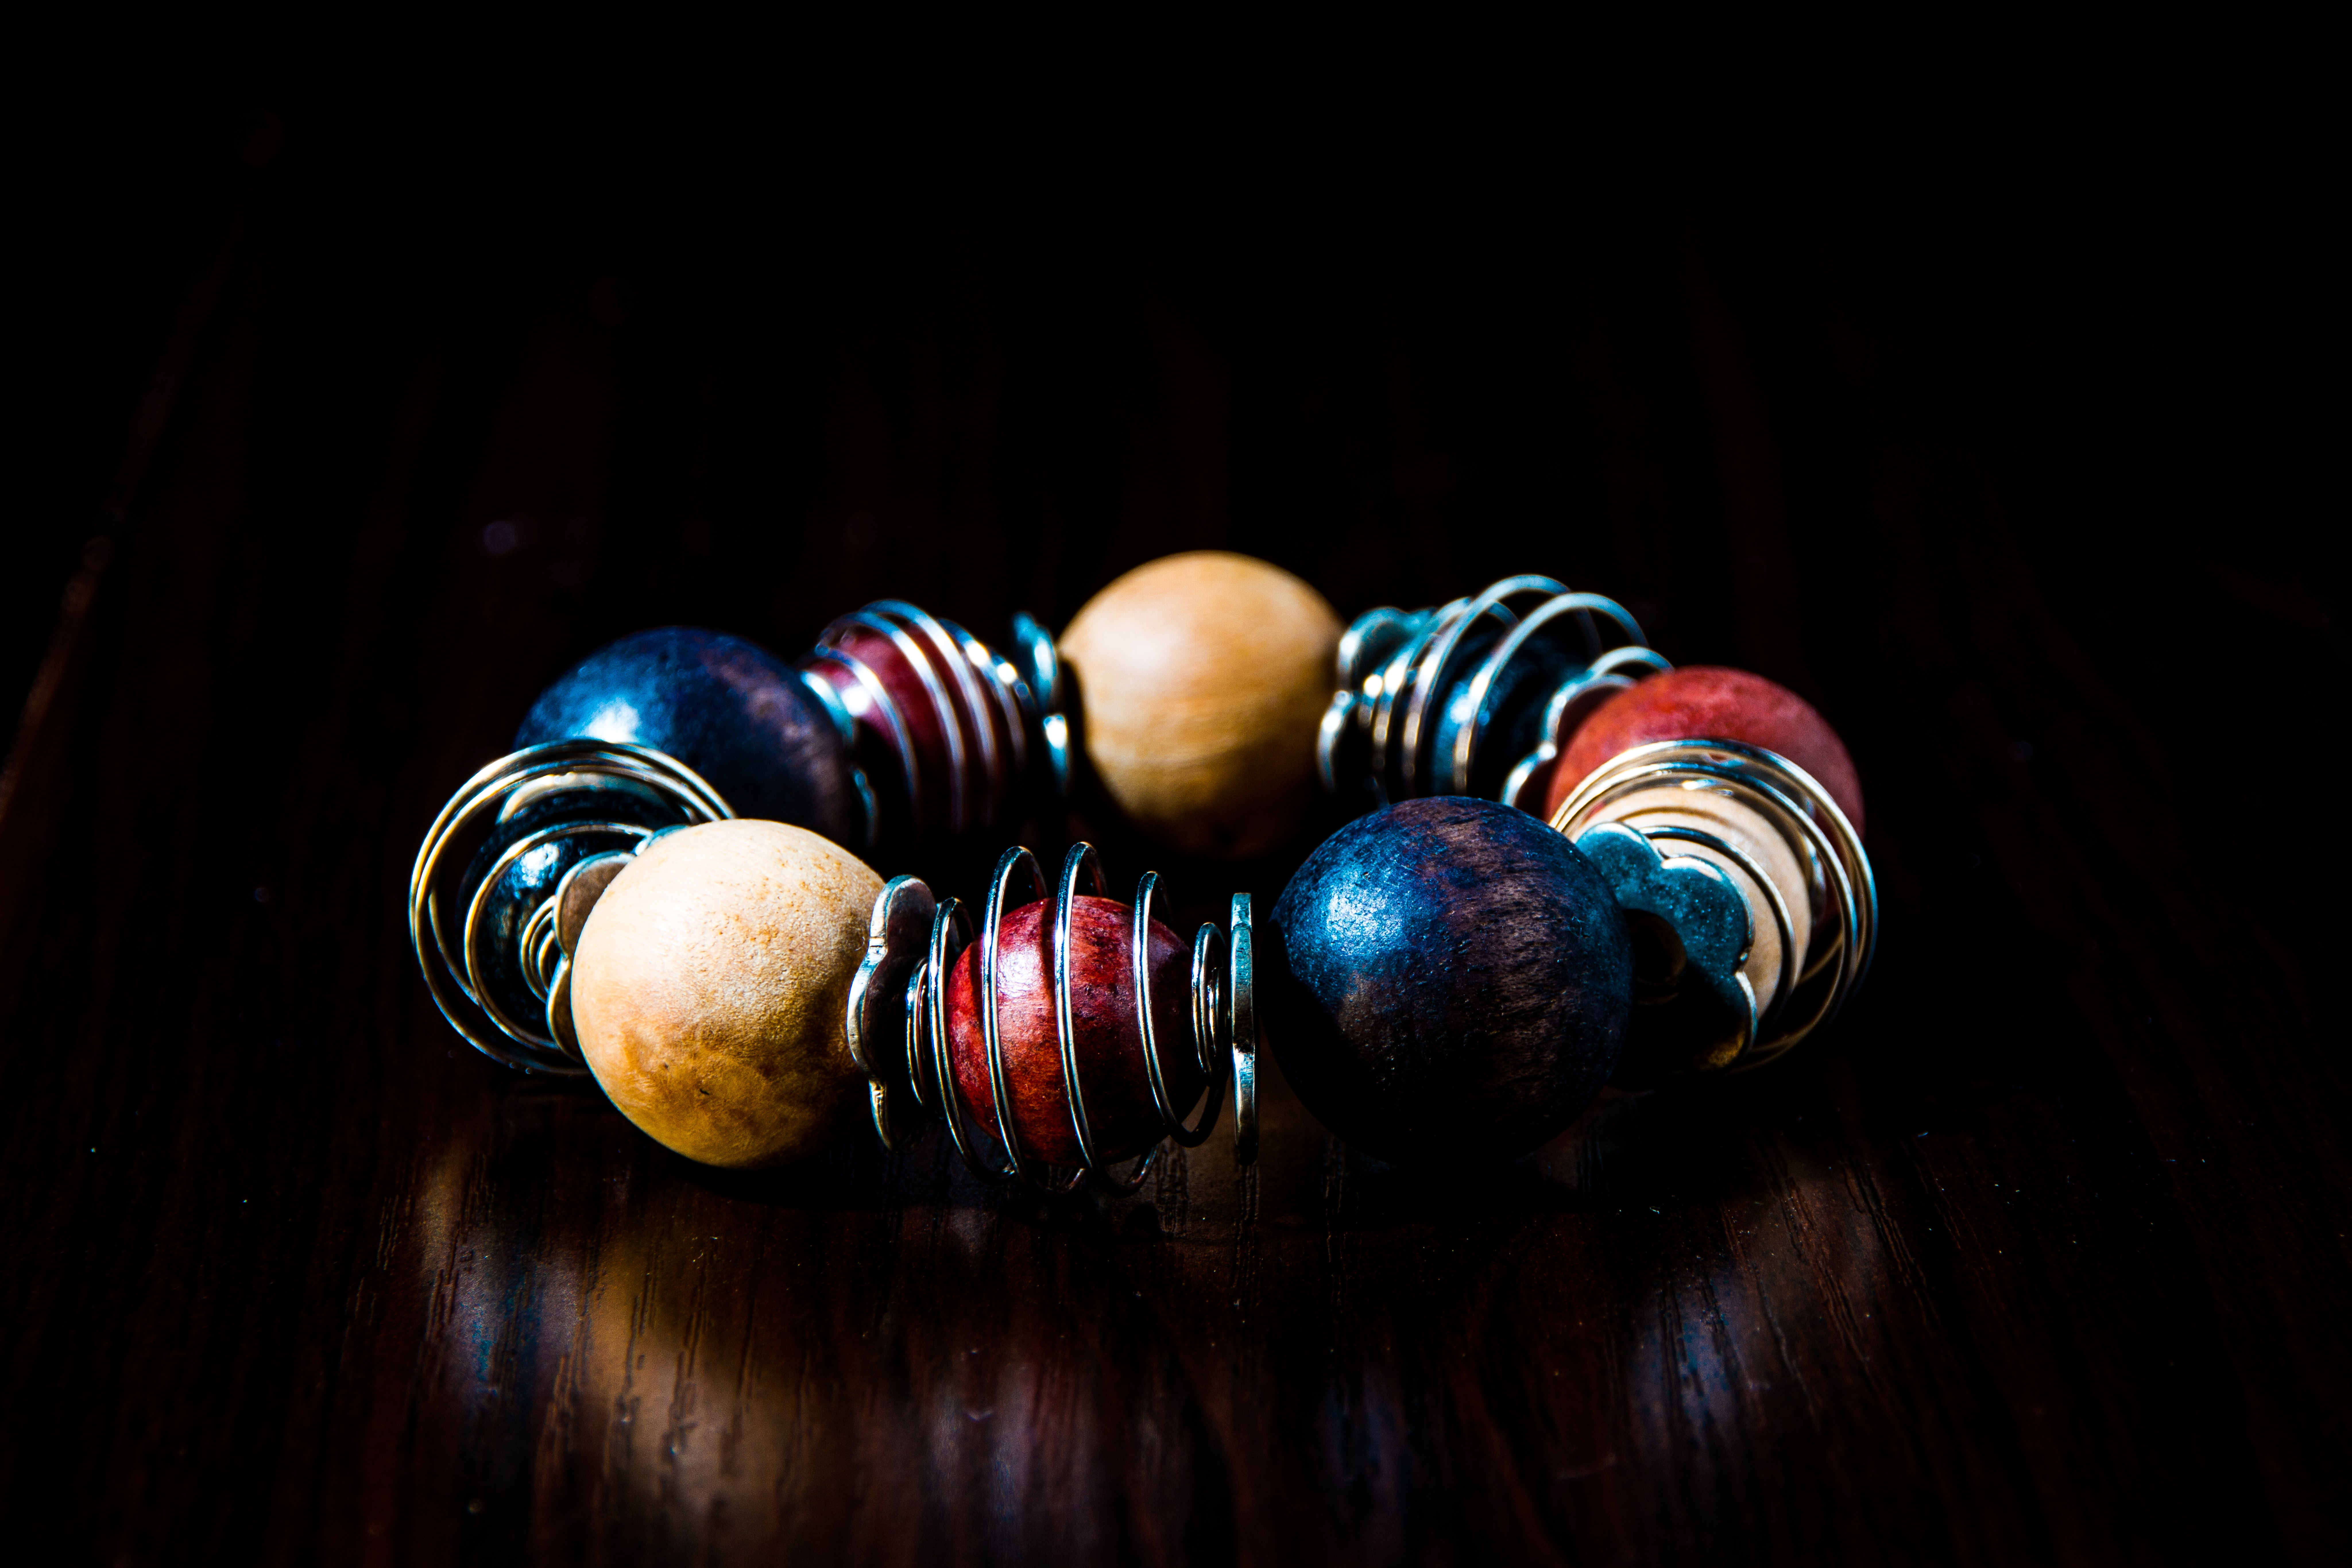 Blue, Red, Beige, and Silver Beaded Bracelet, Art, Spiral, Shining, Shapes, HQ Photo